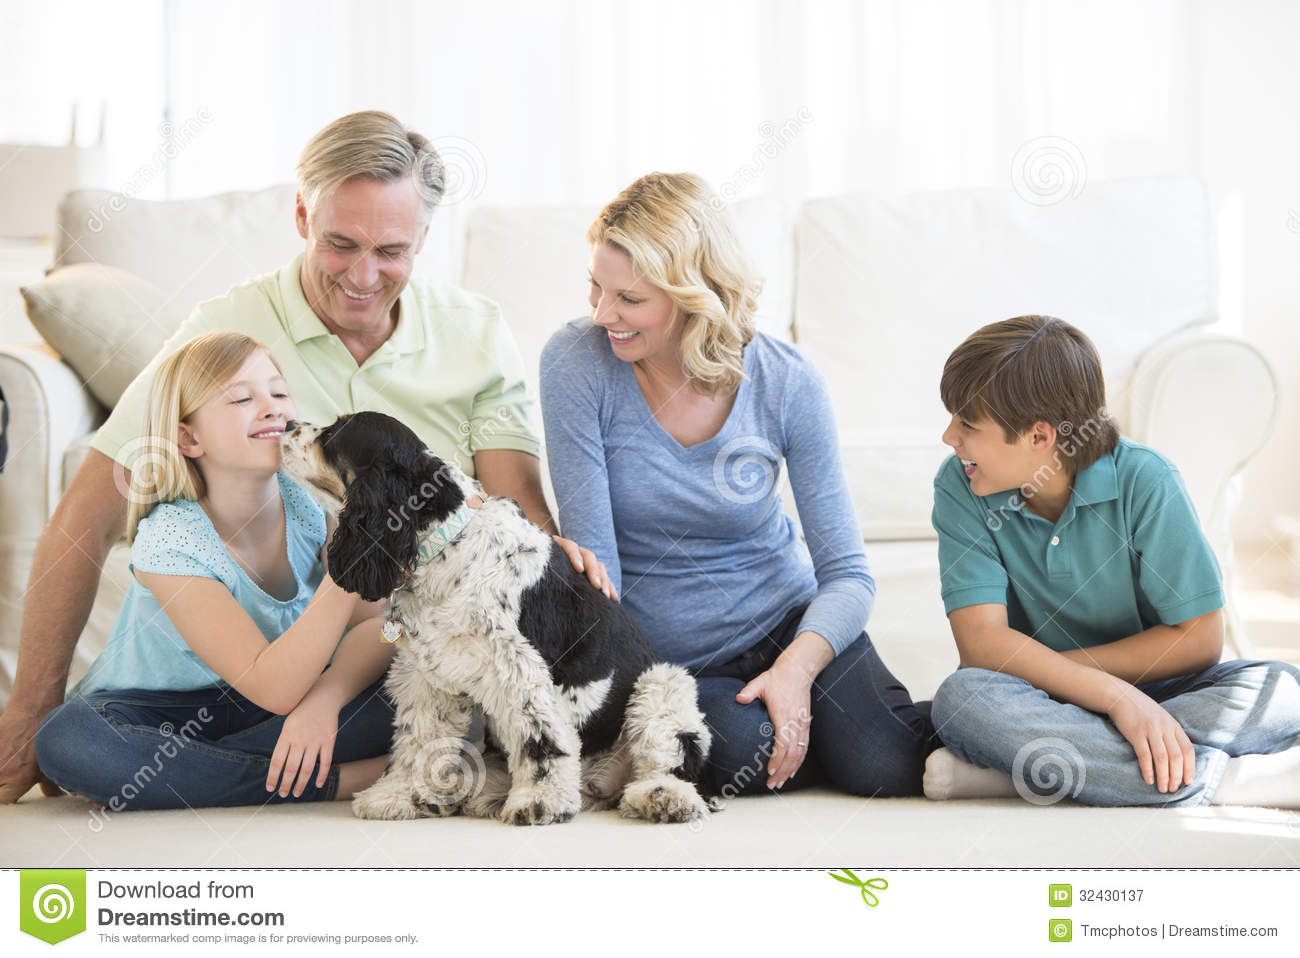 Girl Playing With Dog While Family Looking At Her